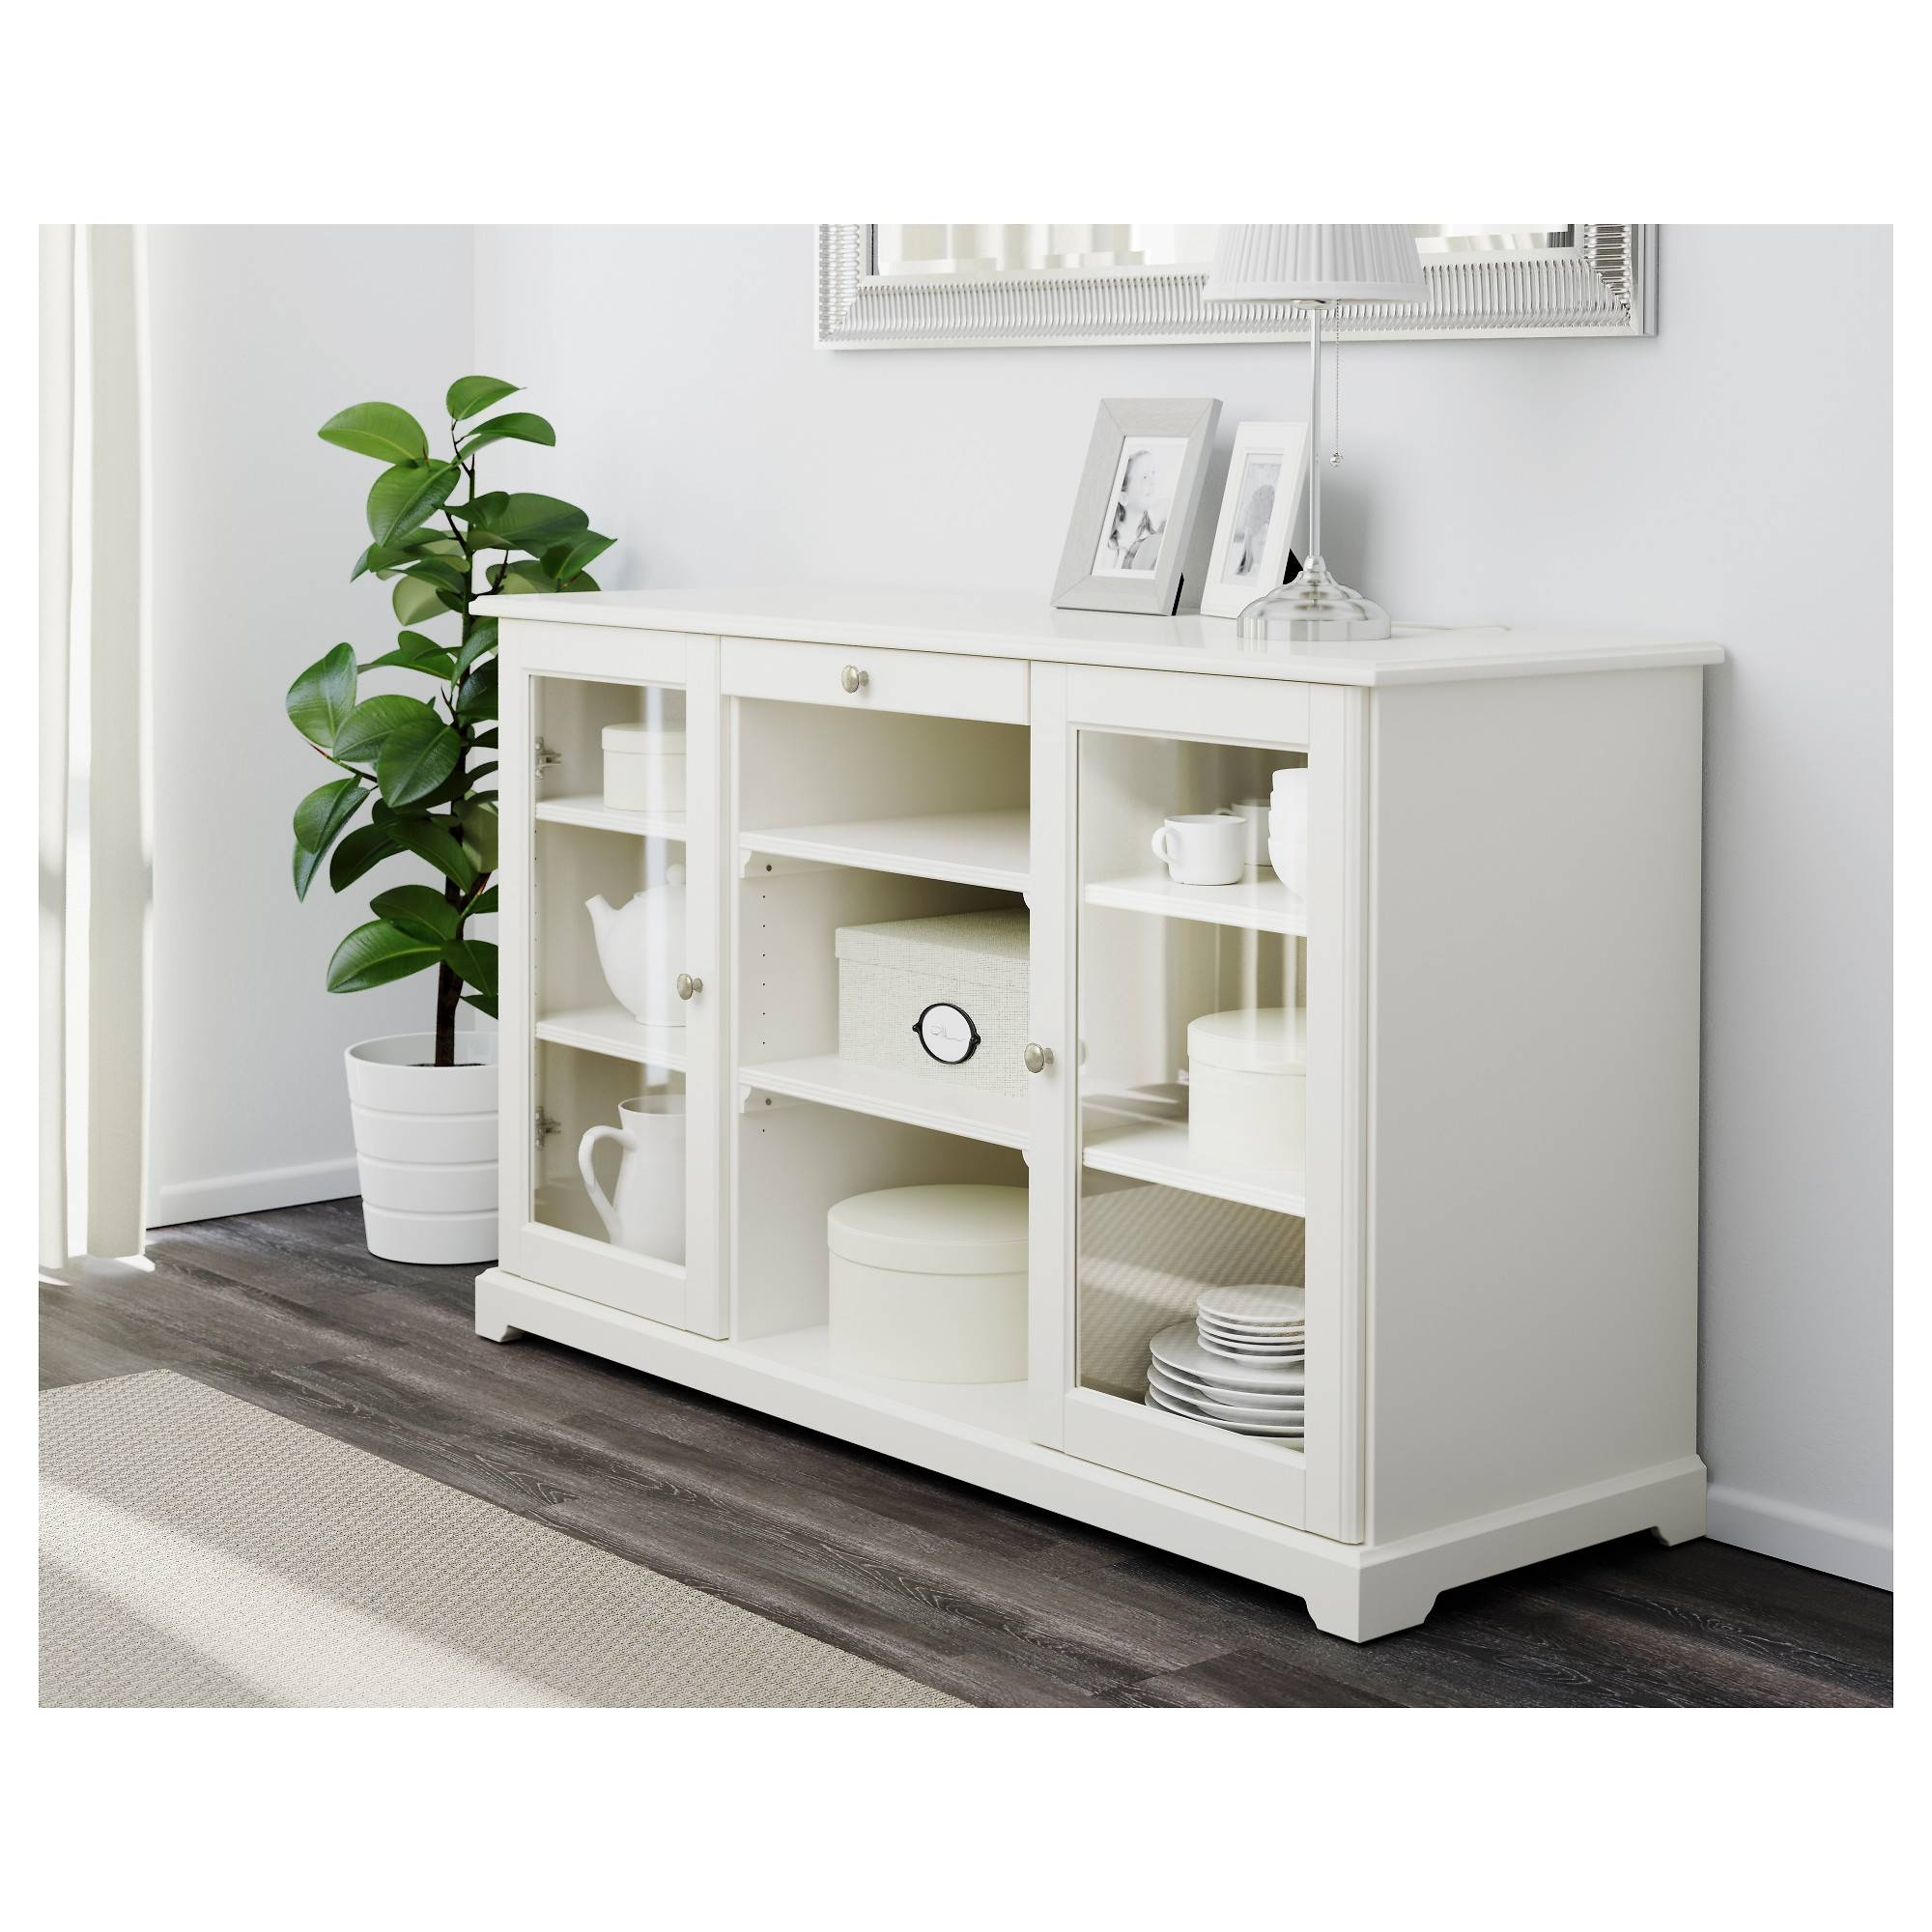 Liatorp Sideboard – White – Ikea For Liatorp Sideboards (View 2 of 15)